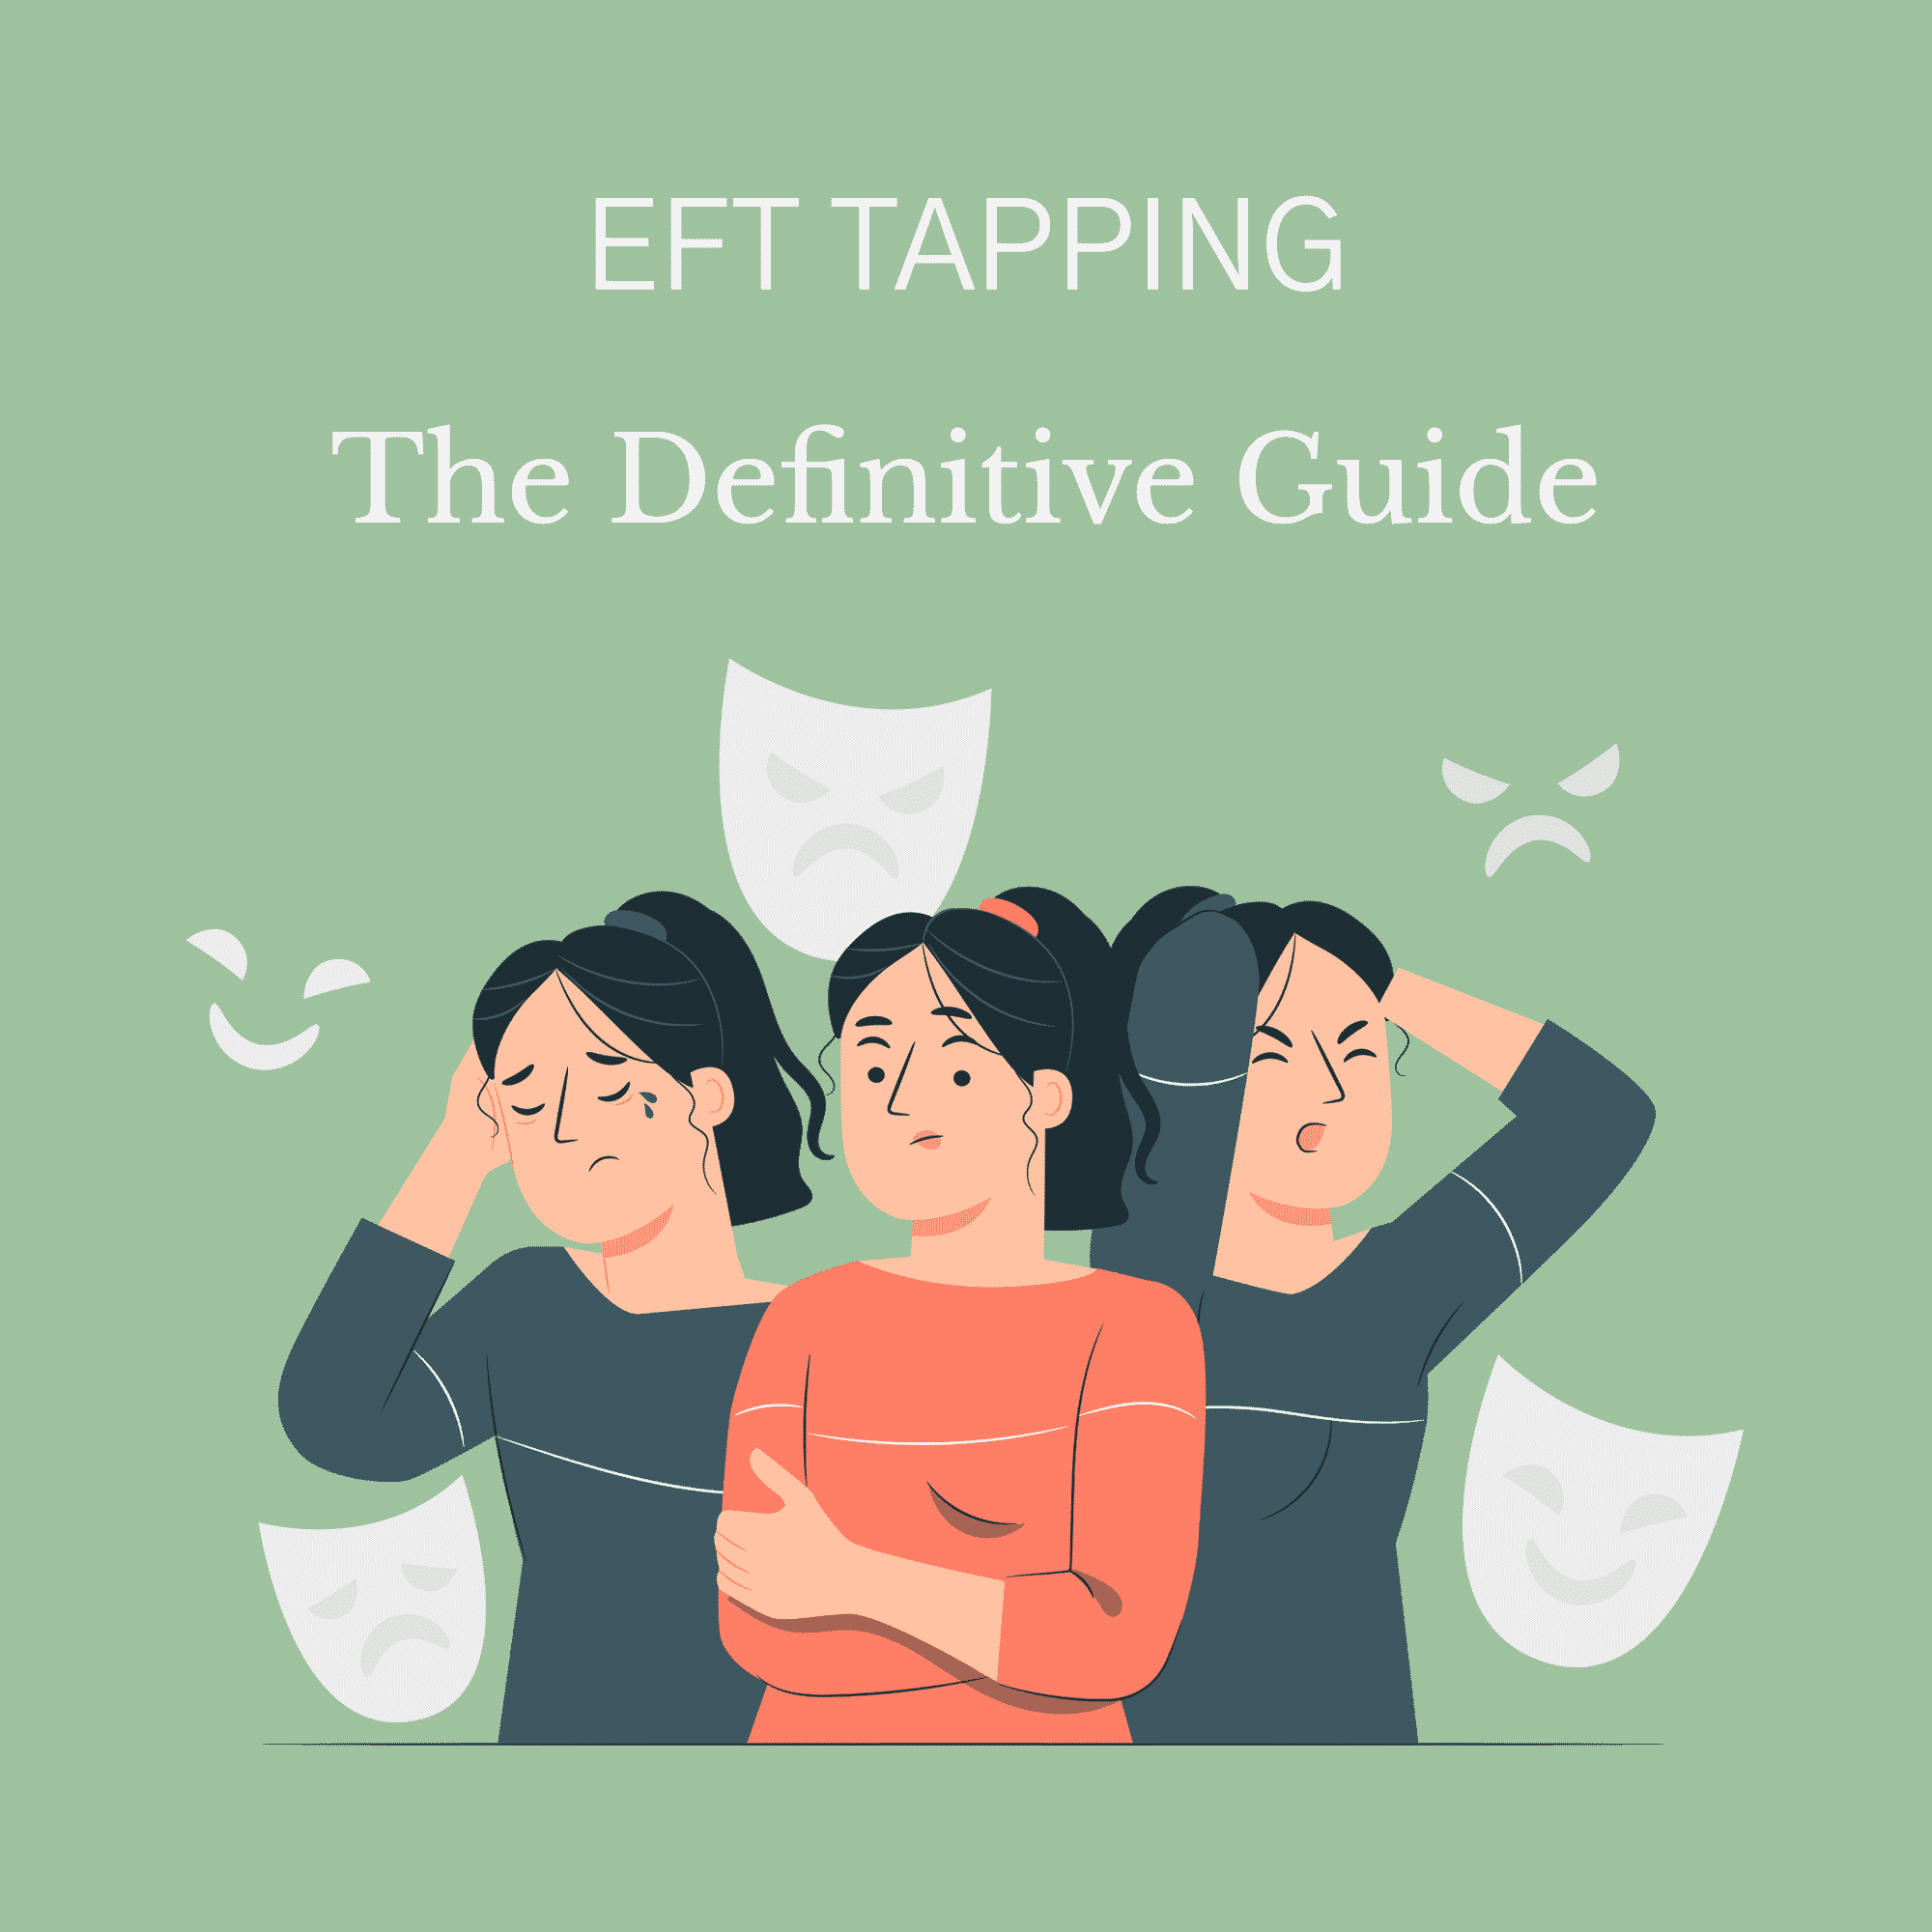 EFT Tapping: The Definitive Guide